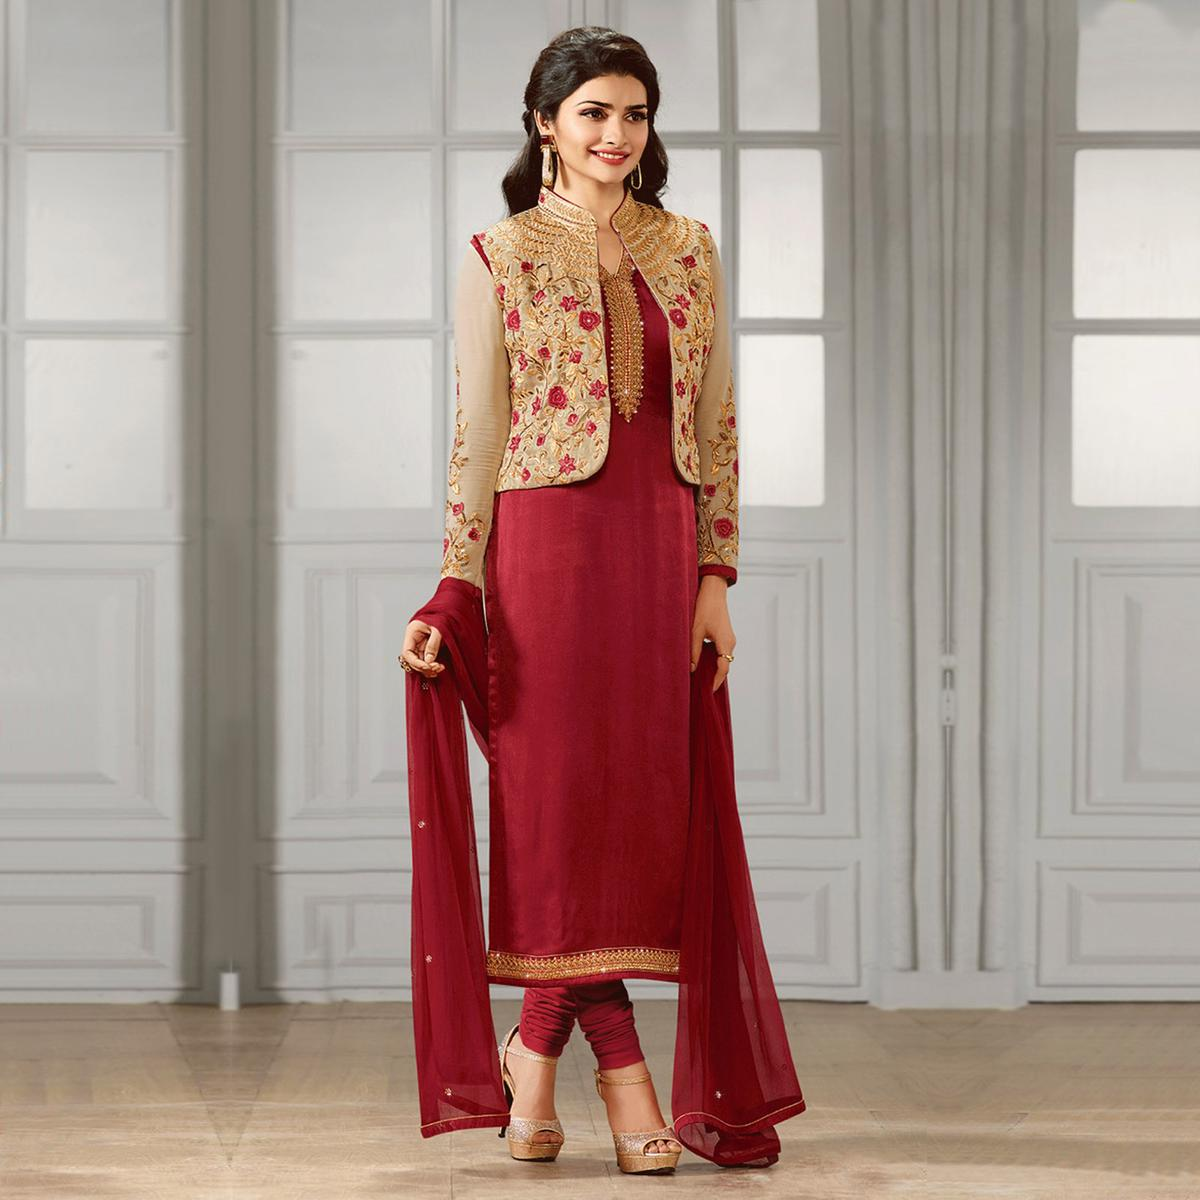 293d469d208 Buy Maroon Party Wear Designer Salwar Suit for womens online India ...